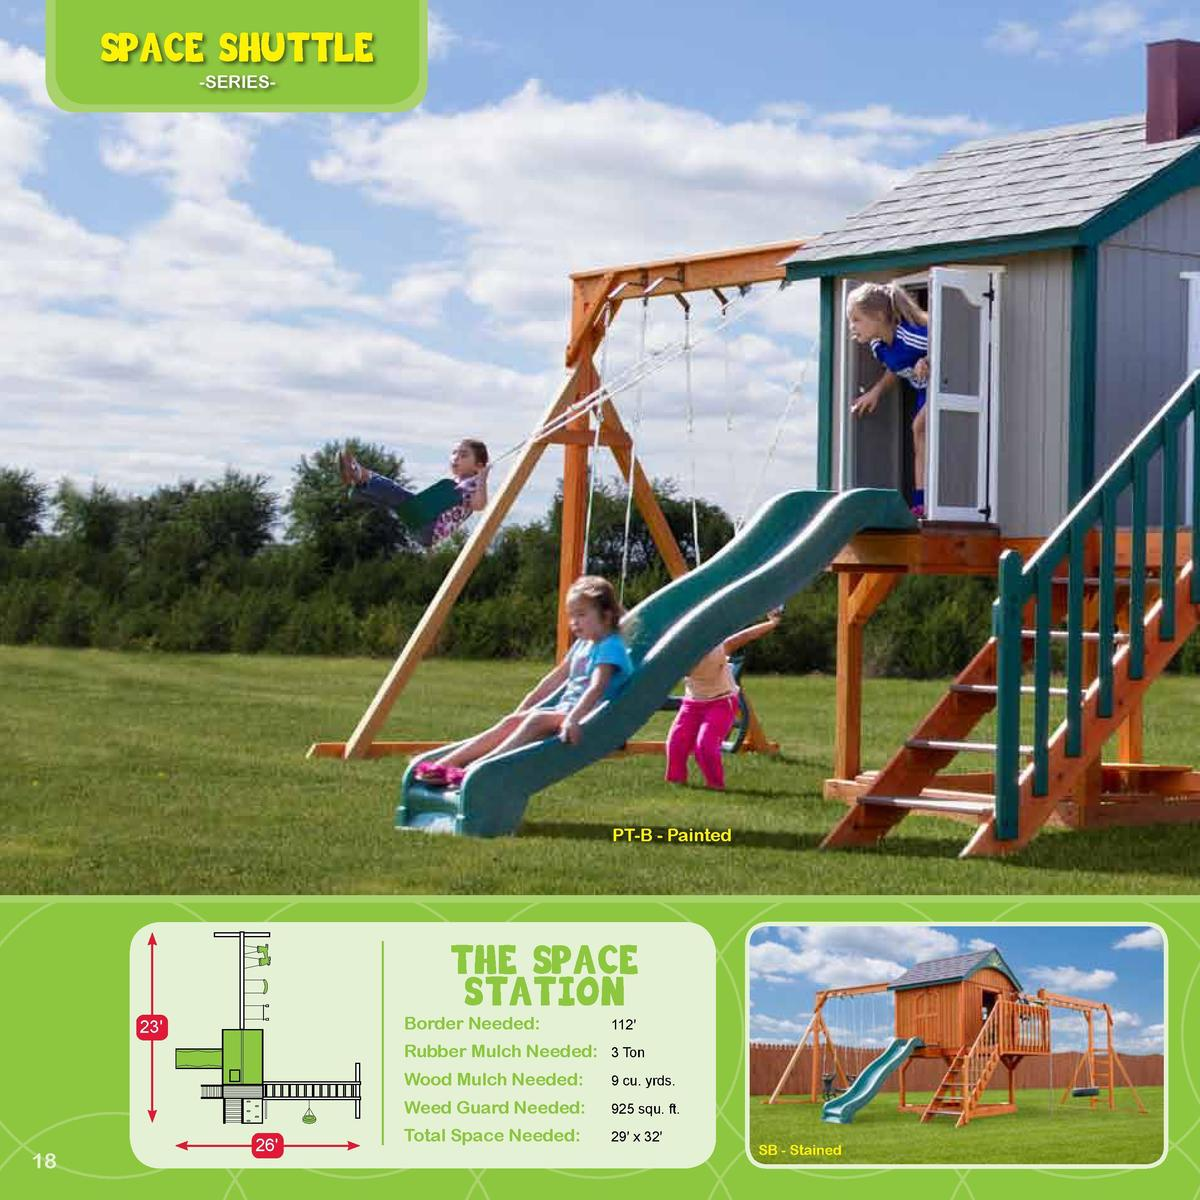 Space Shuttle  Playhouse Roofing  -SERIES-  Asphalt  Did You Know  Kids who play video games have shorter attention spans ...